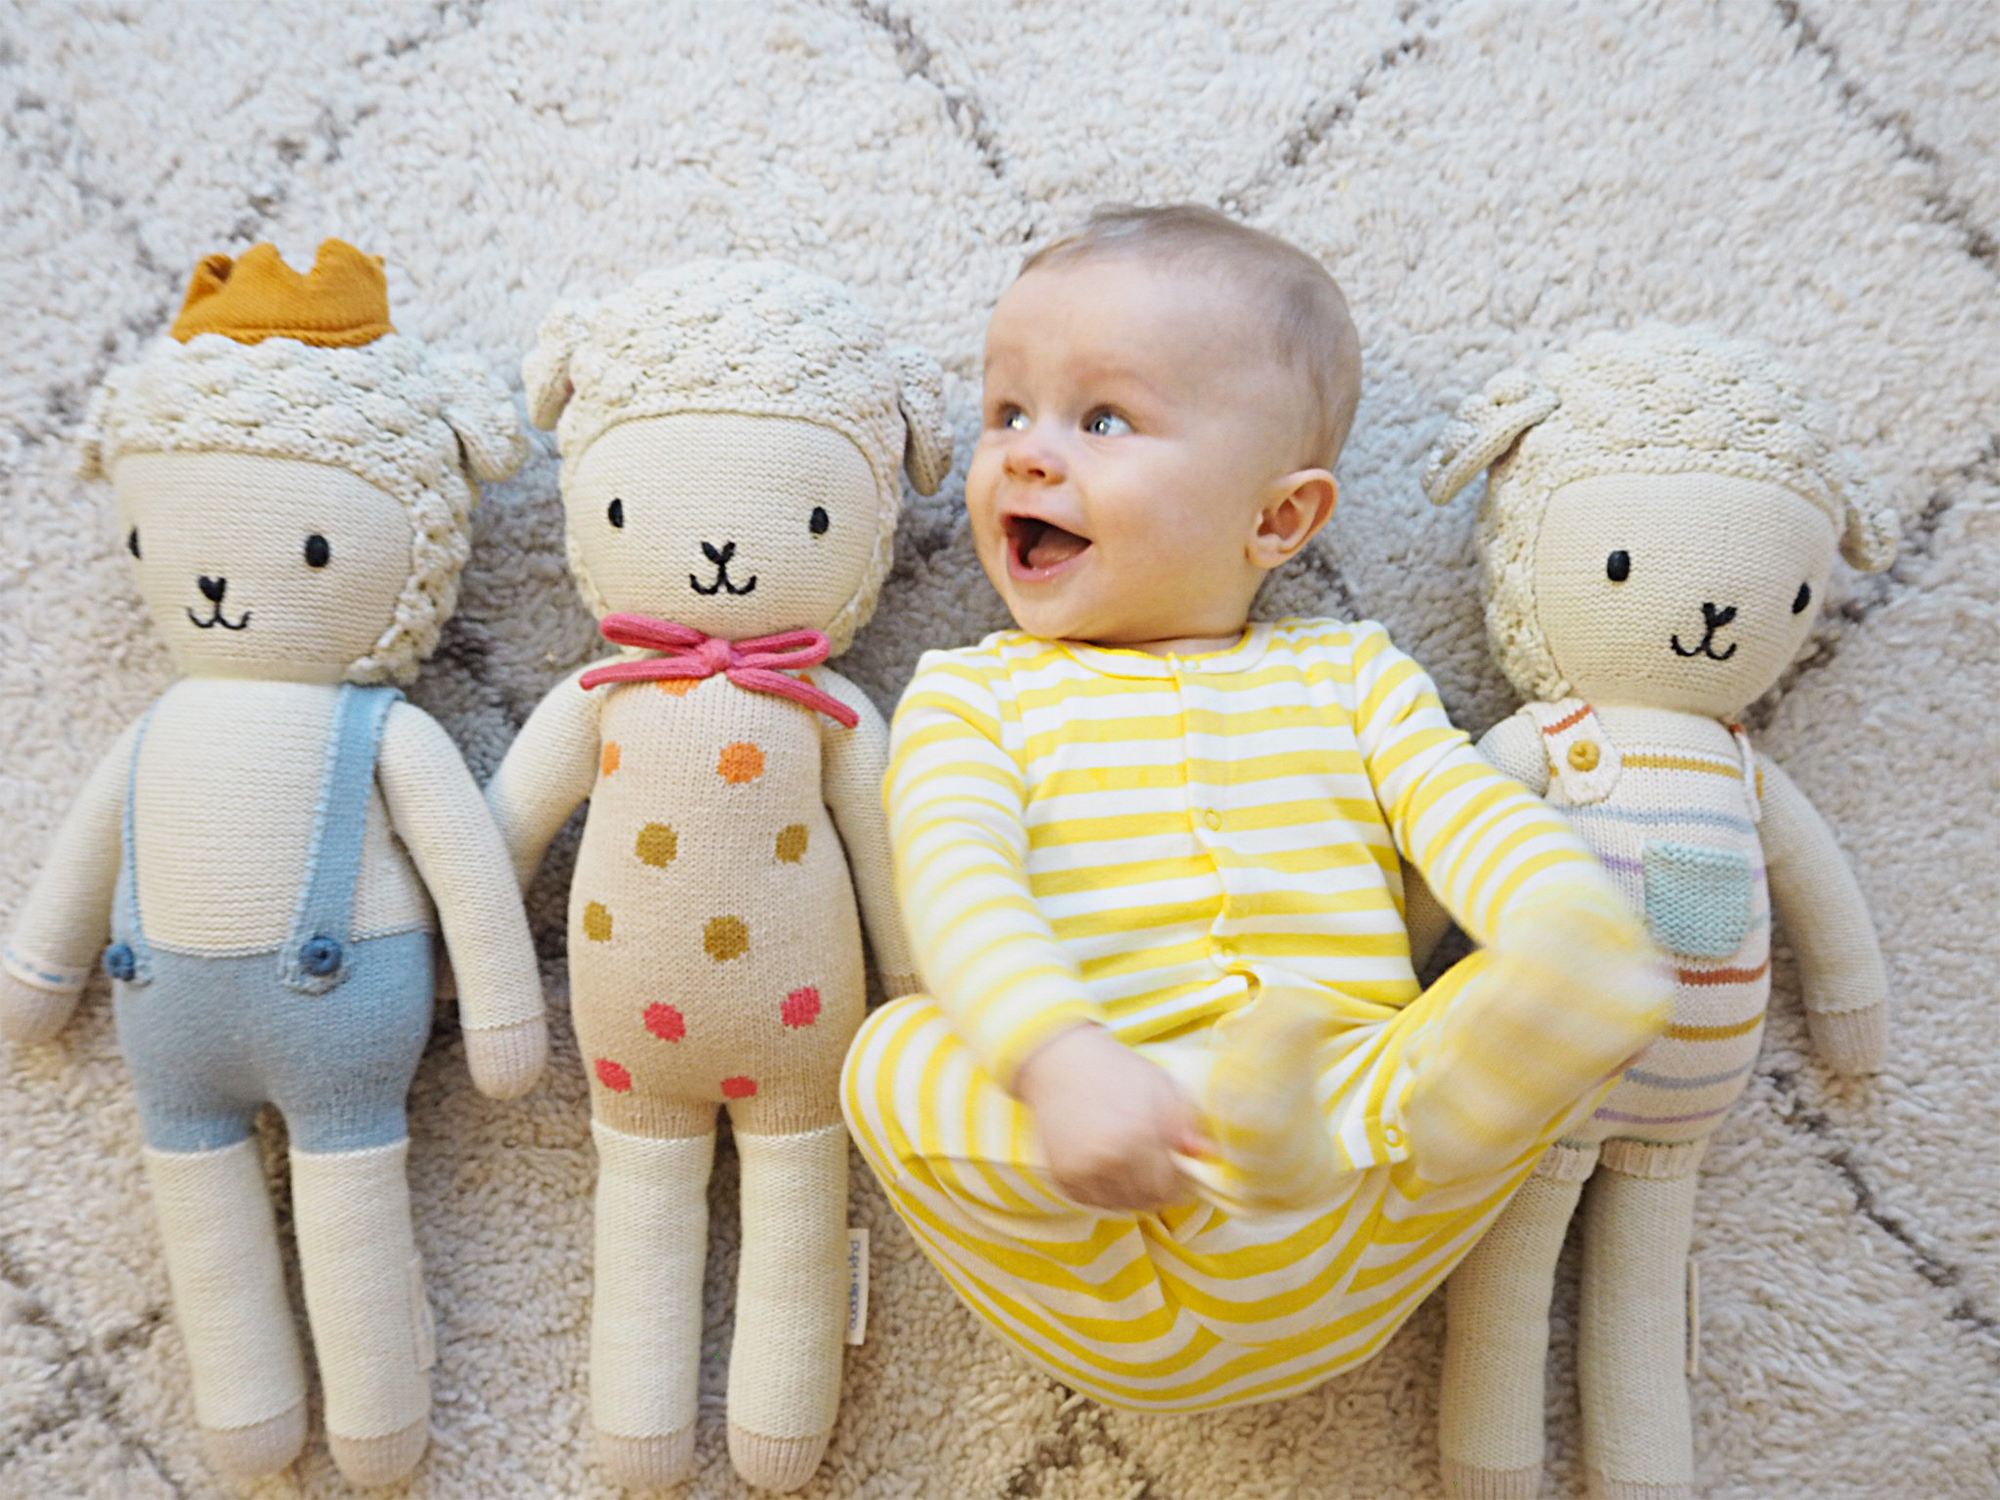 A baby wears a yellow and white sleep suit, lying on a rub with 3 sheep dolls next to him